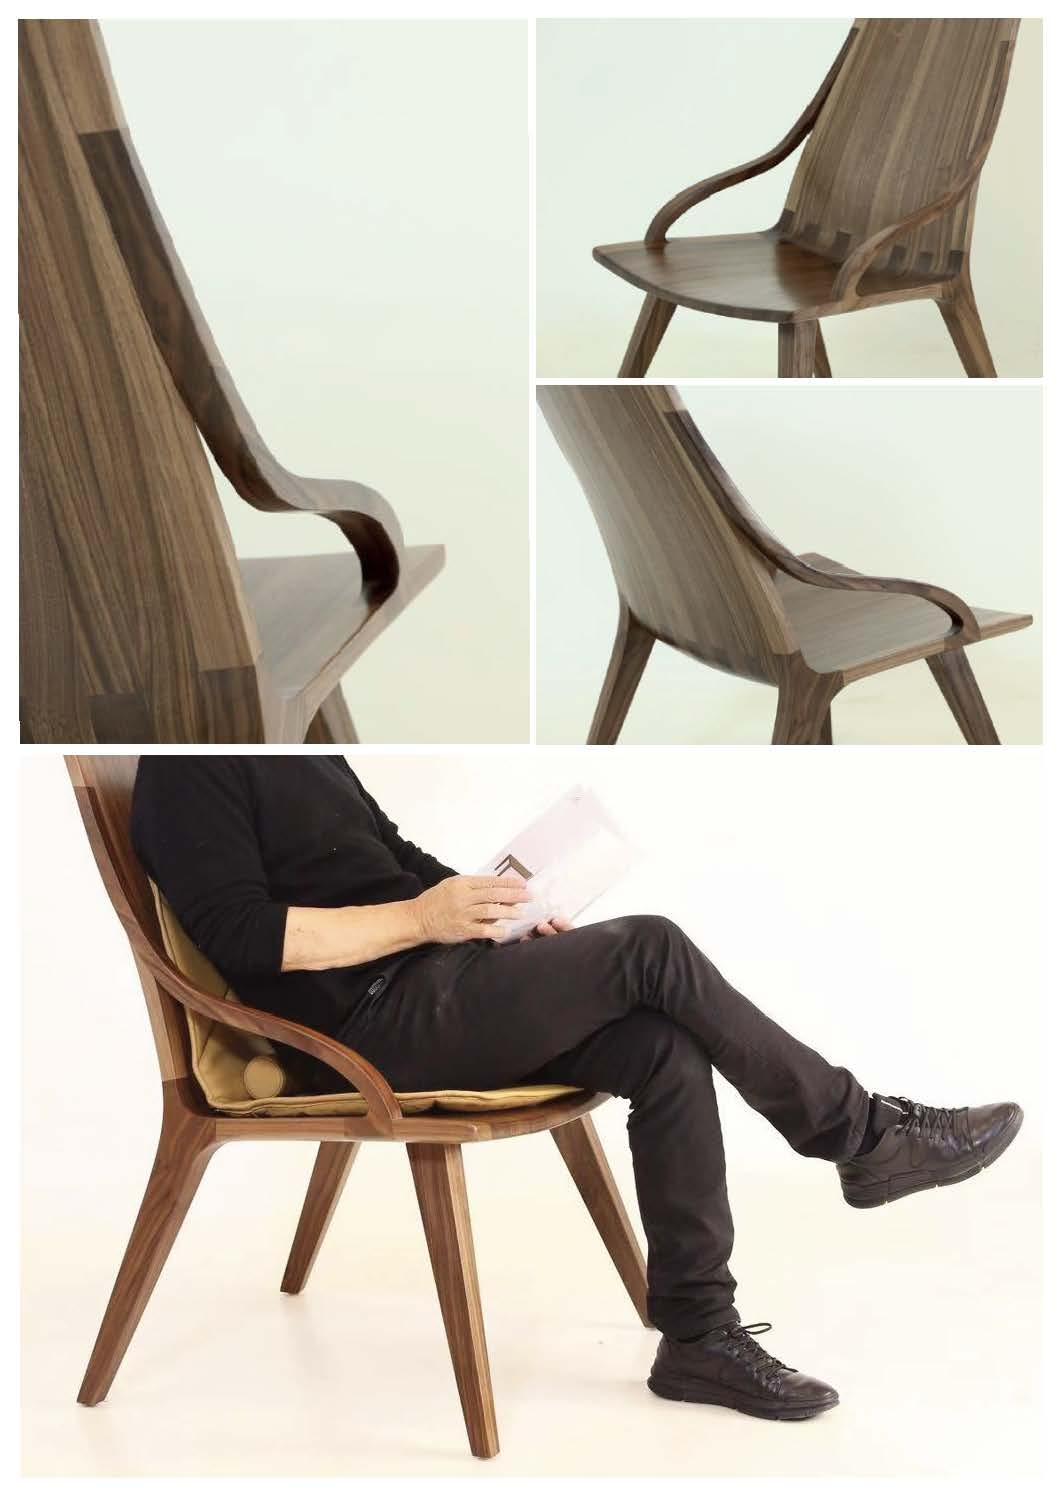 「Reading Lounge Chair」 (Tin Lau、 Mic Leong、Aron Tsang)